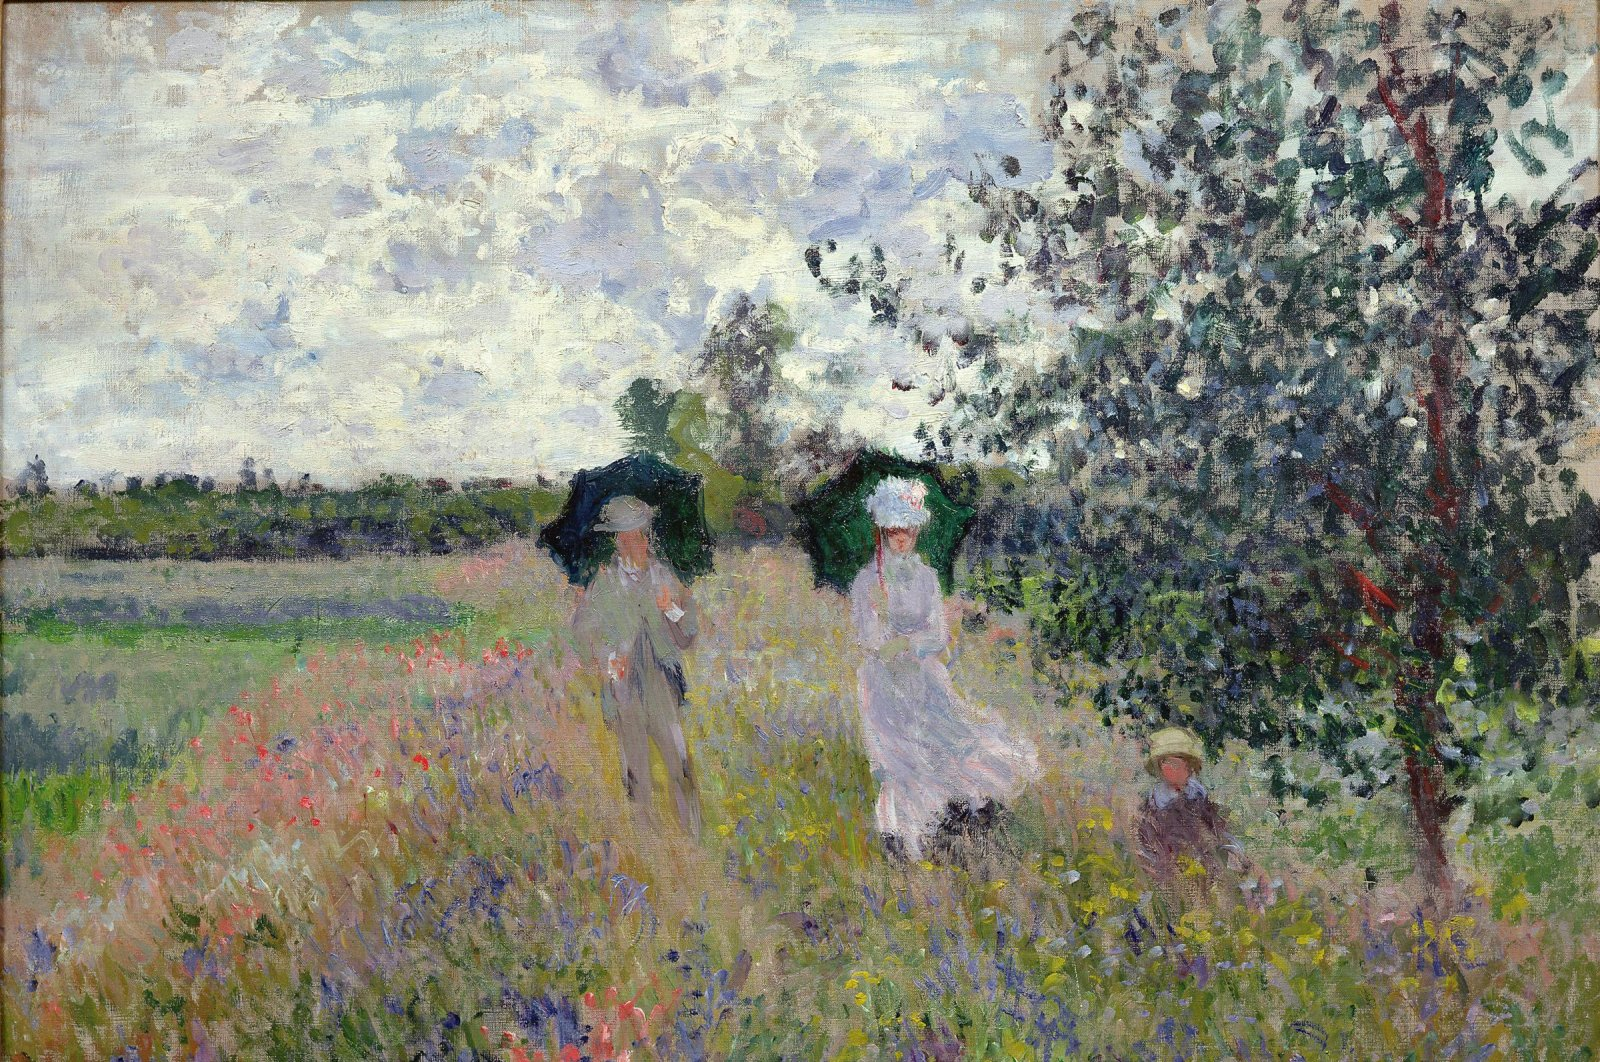 """Famous painting """"Taking a Walk near Argenteuil"""" takess place in the section of """"In Search of Giverny."""" (Courtesy of SSM)"""